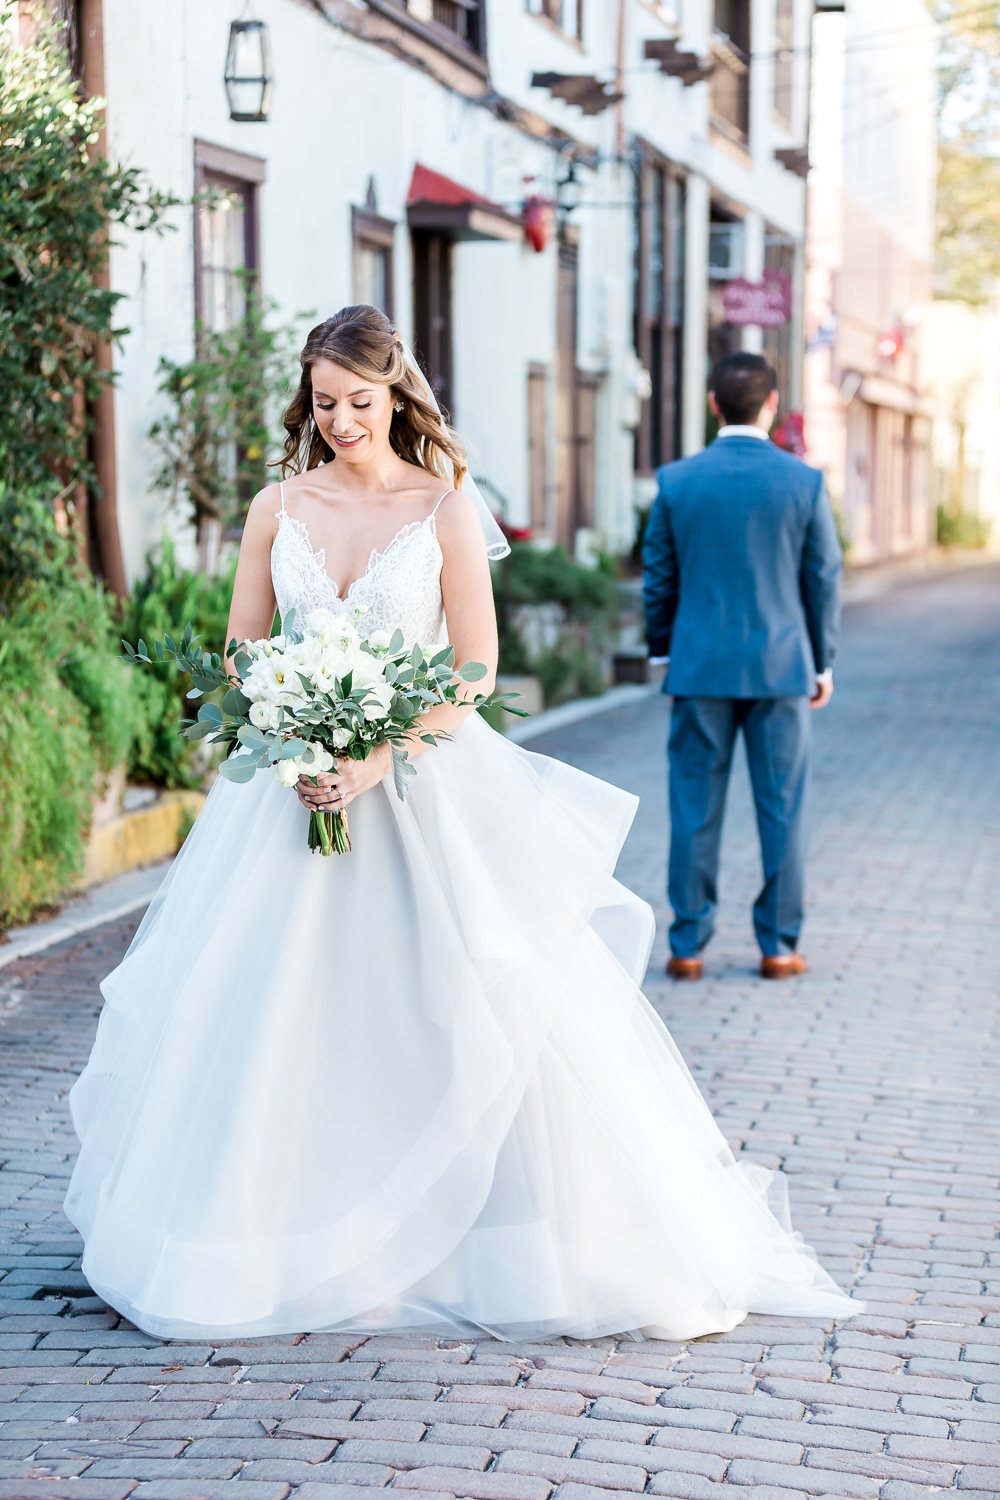 bride and groom first look at the streets of st.augustine in a winter wedding in villa blanca